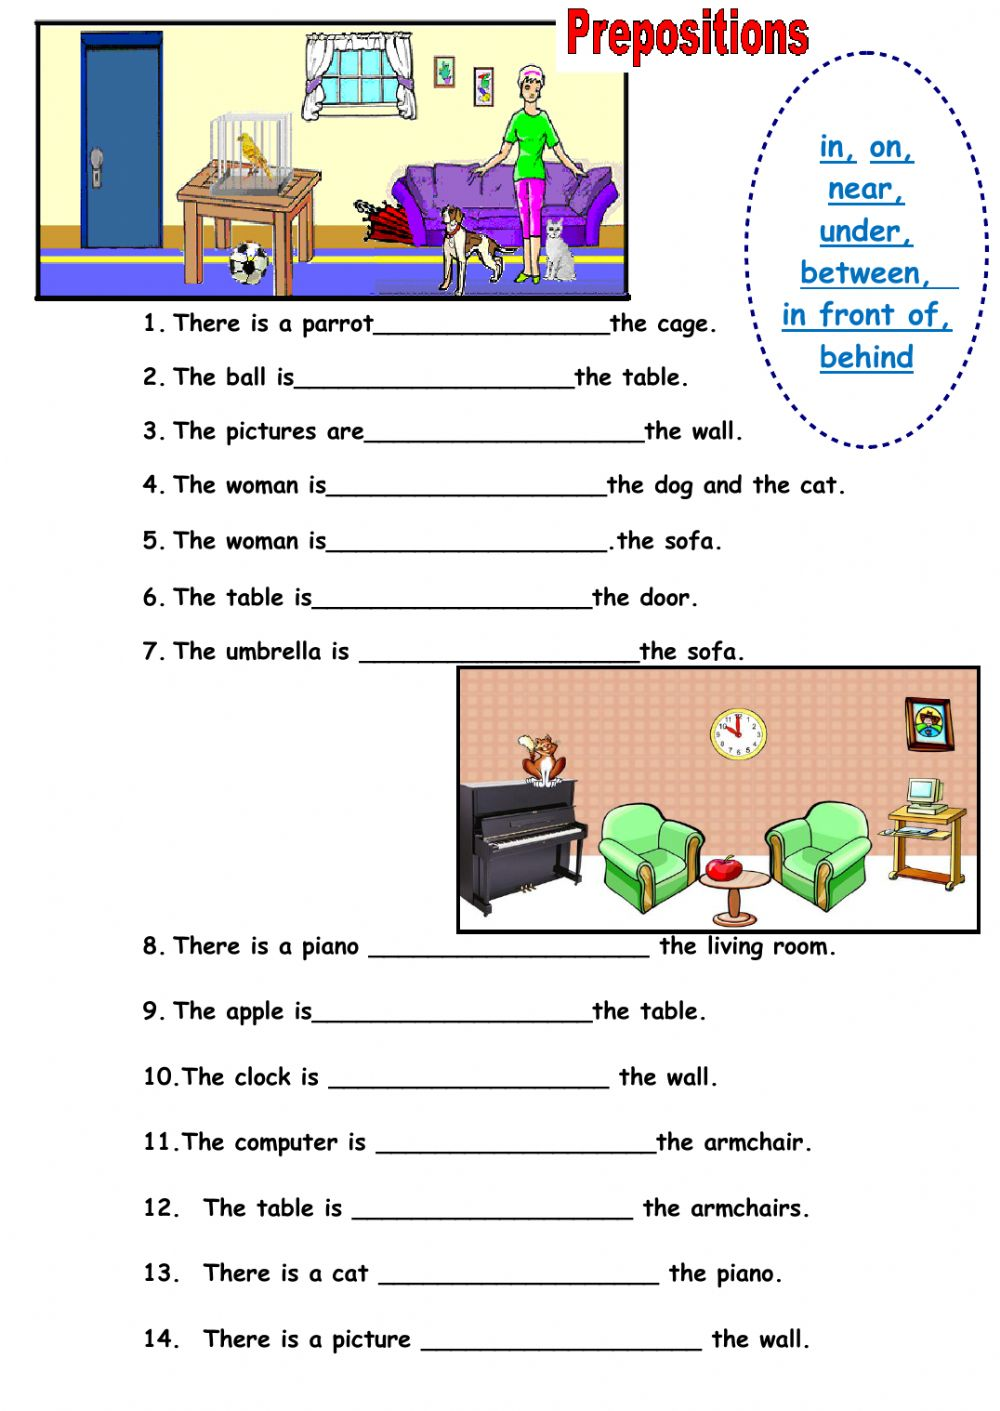 medium resolution of Prepositions of place interactive worksheet